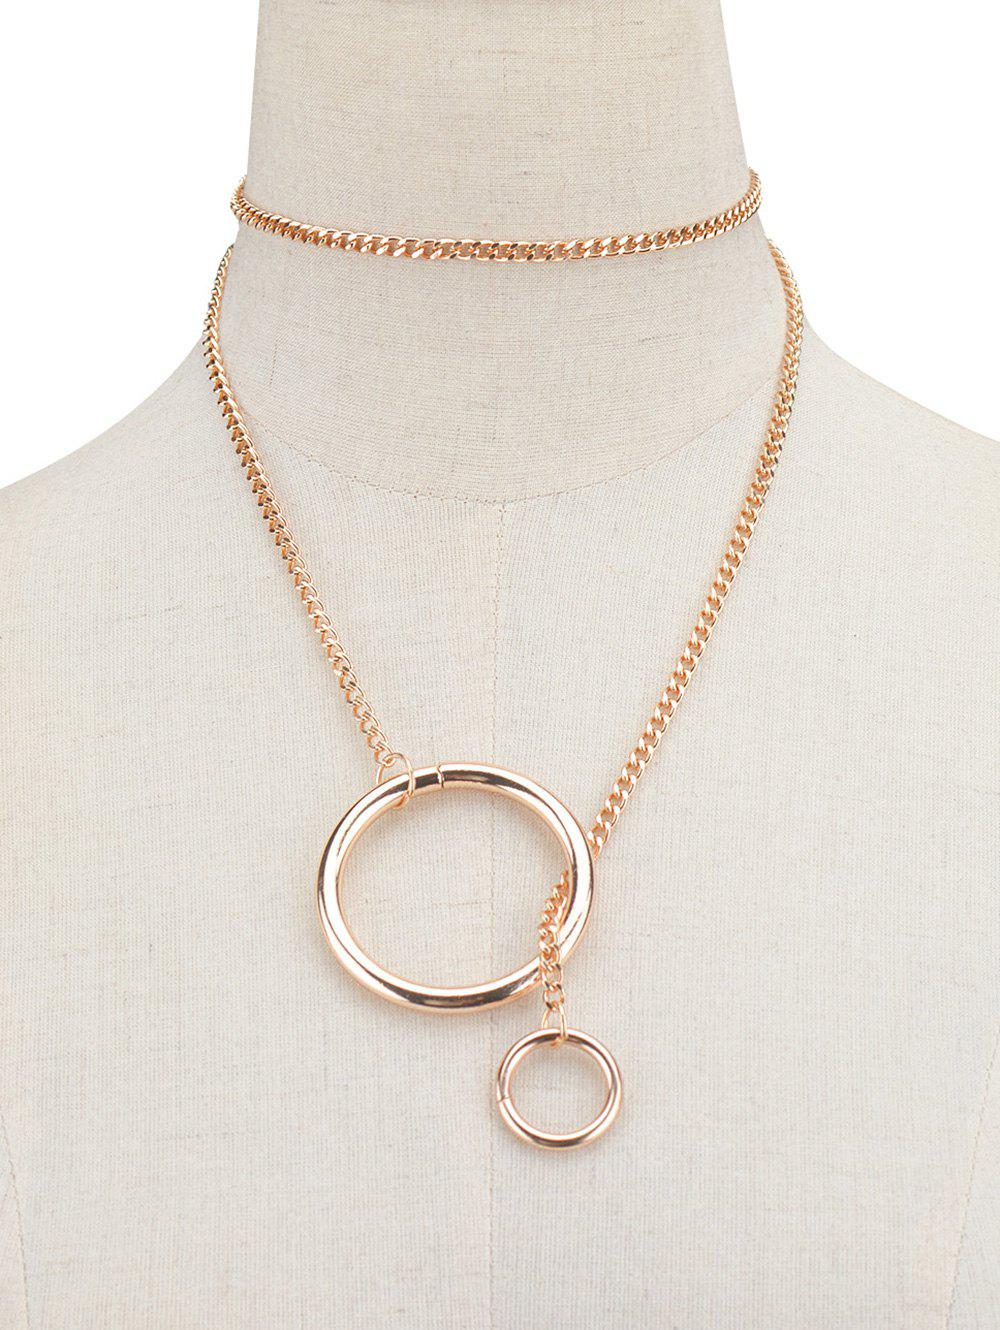 Vintage Circle Chain NecklaceJEWELRY<br><br>Color: GOLDEN; Item Type: Pendant Necklace; Gender: For Women; Style: Trendy; Shape/Pattern: Round; Weight: 0.070kg; Package Contents: 1 x Necklace;